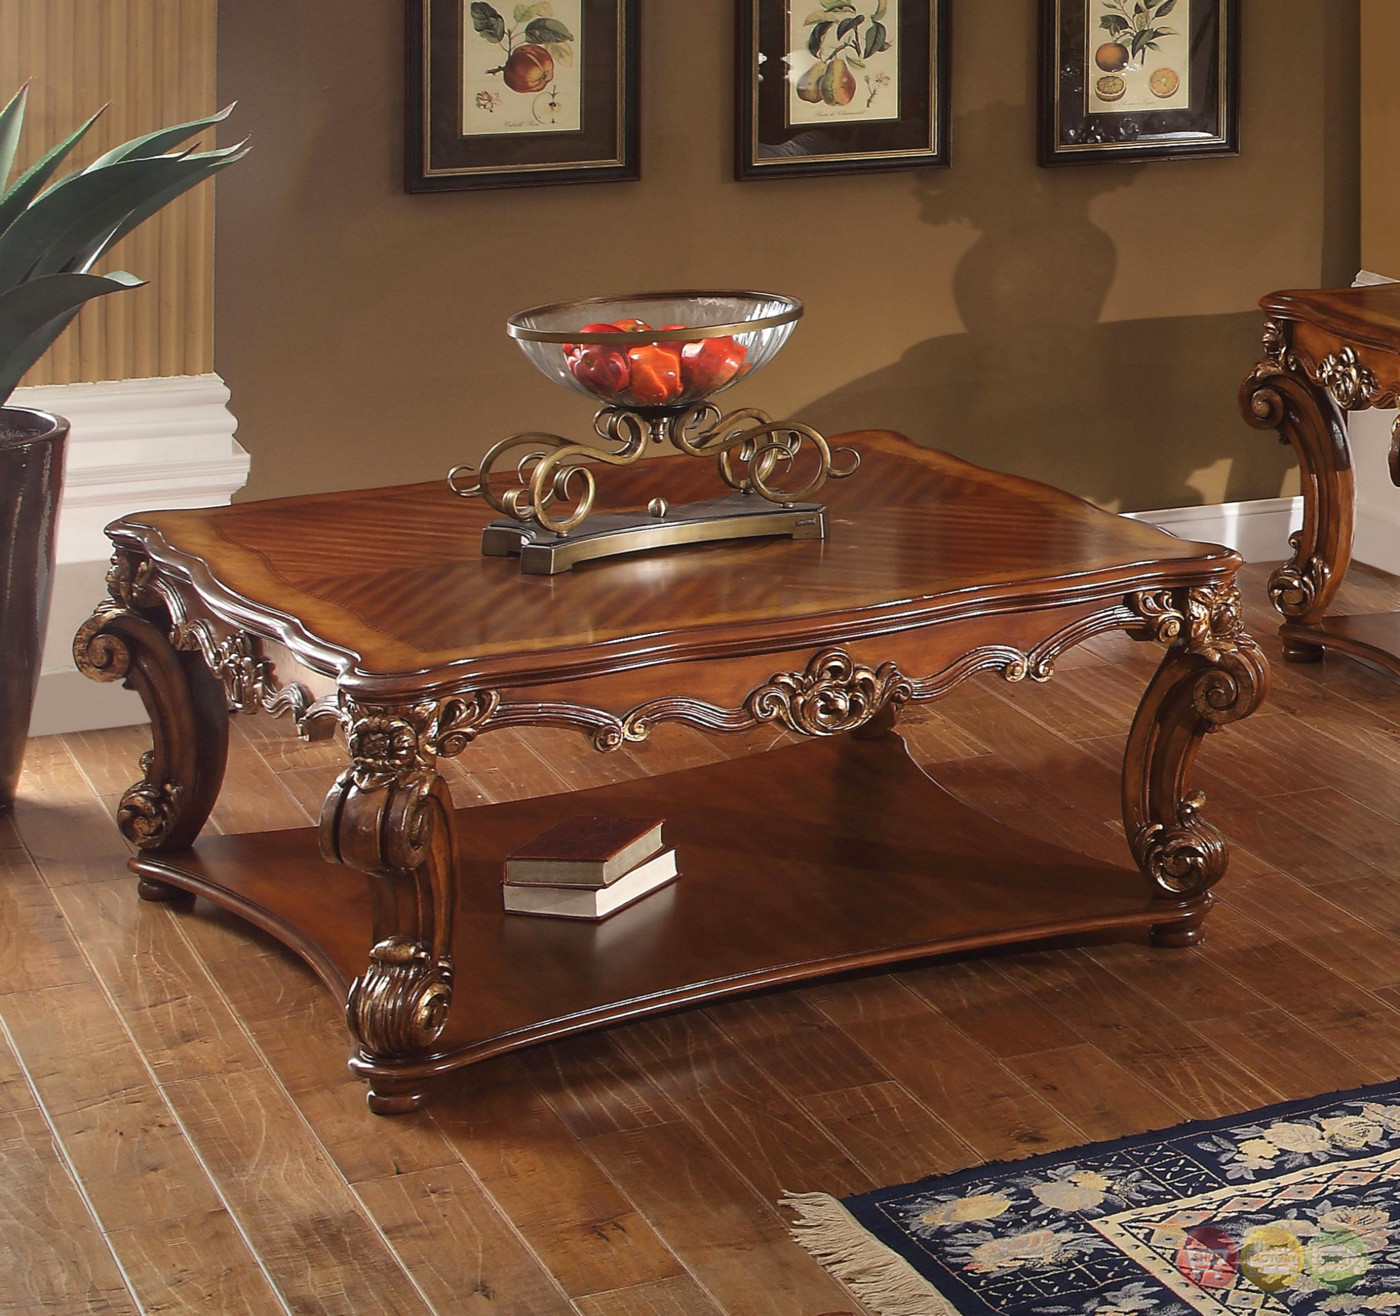 Vendome Traditional Ornate Coffee Table With Wood Top In